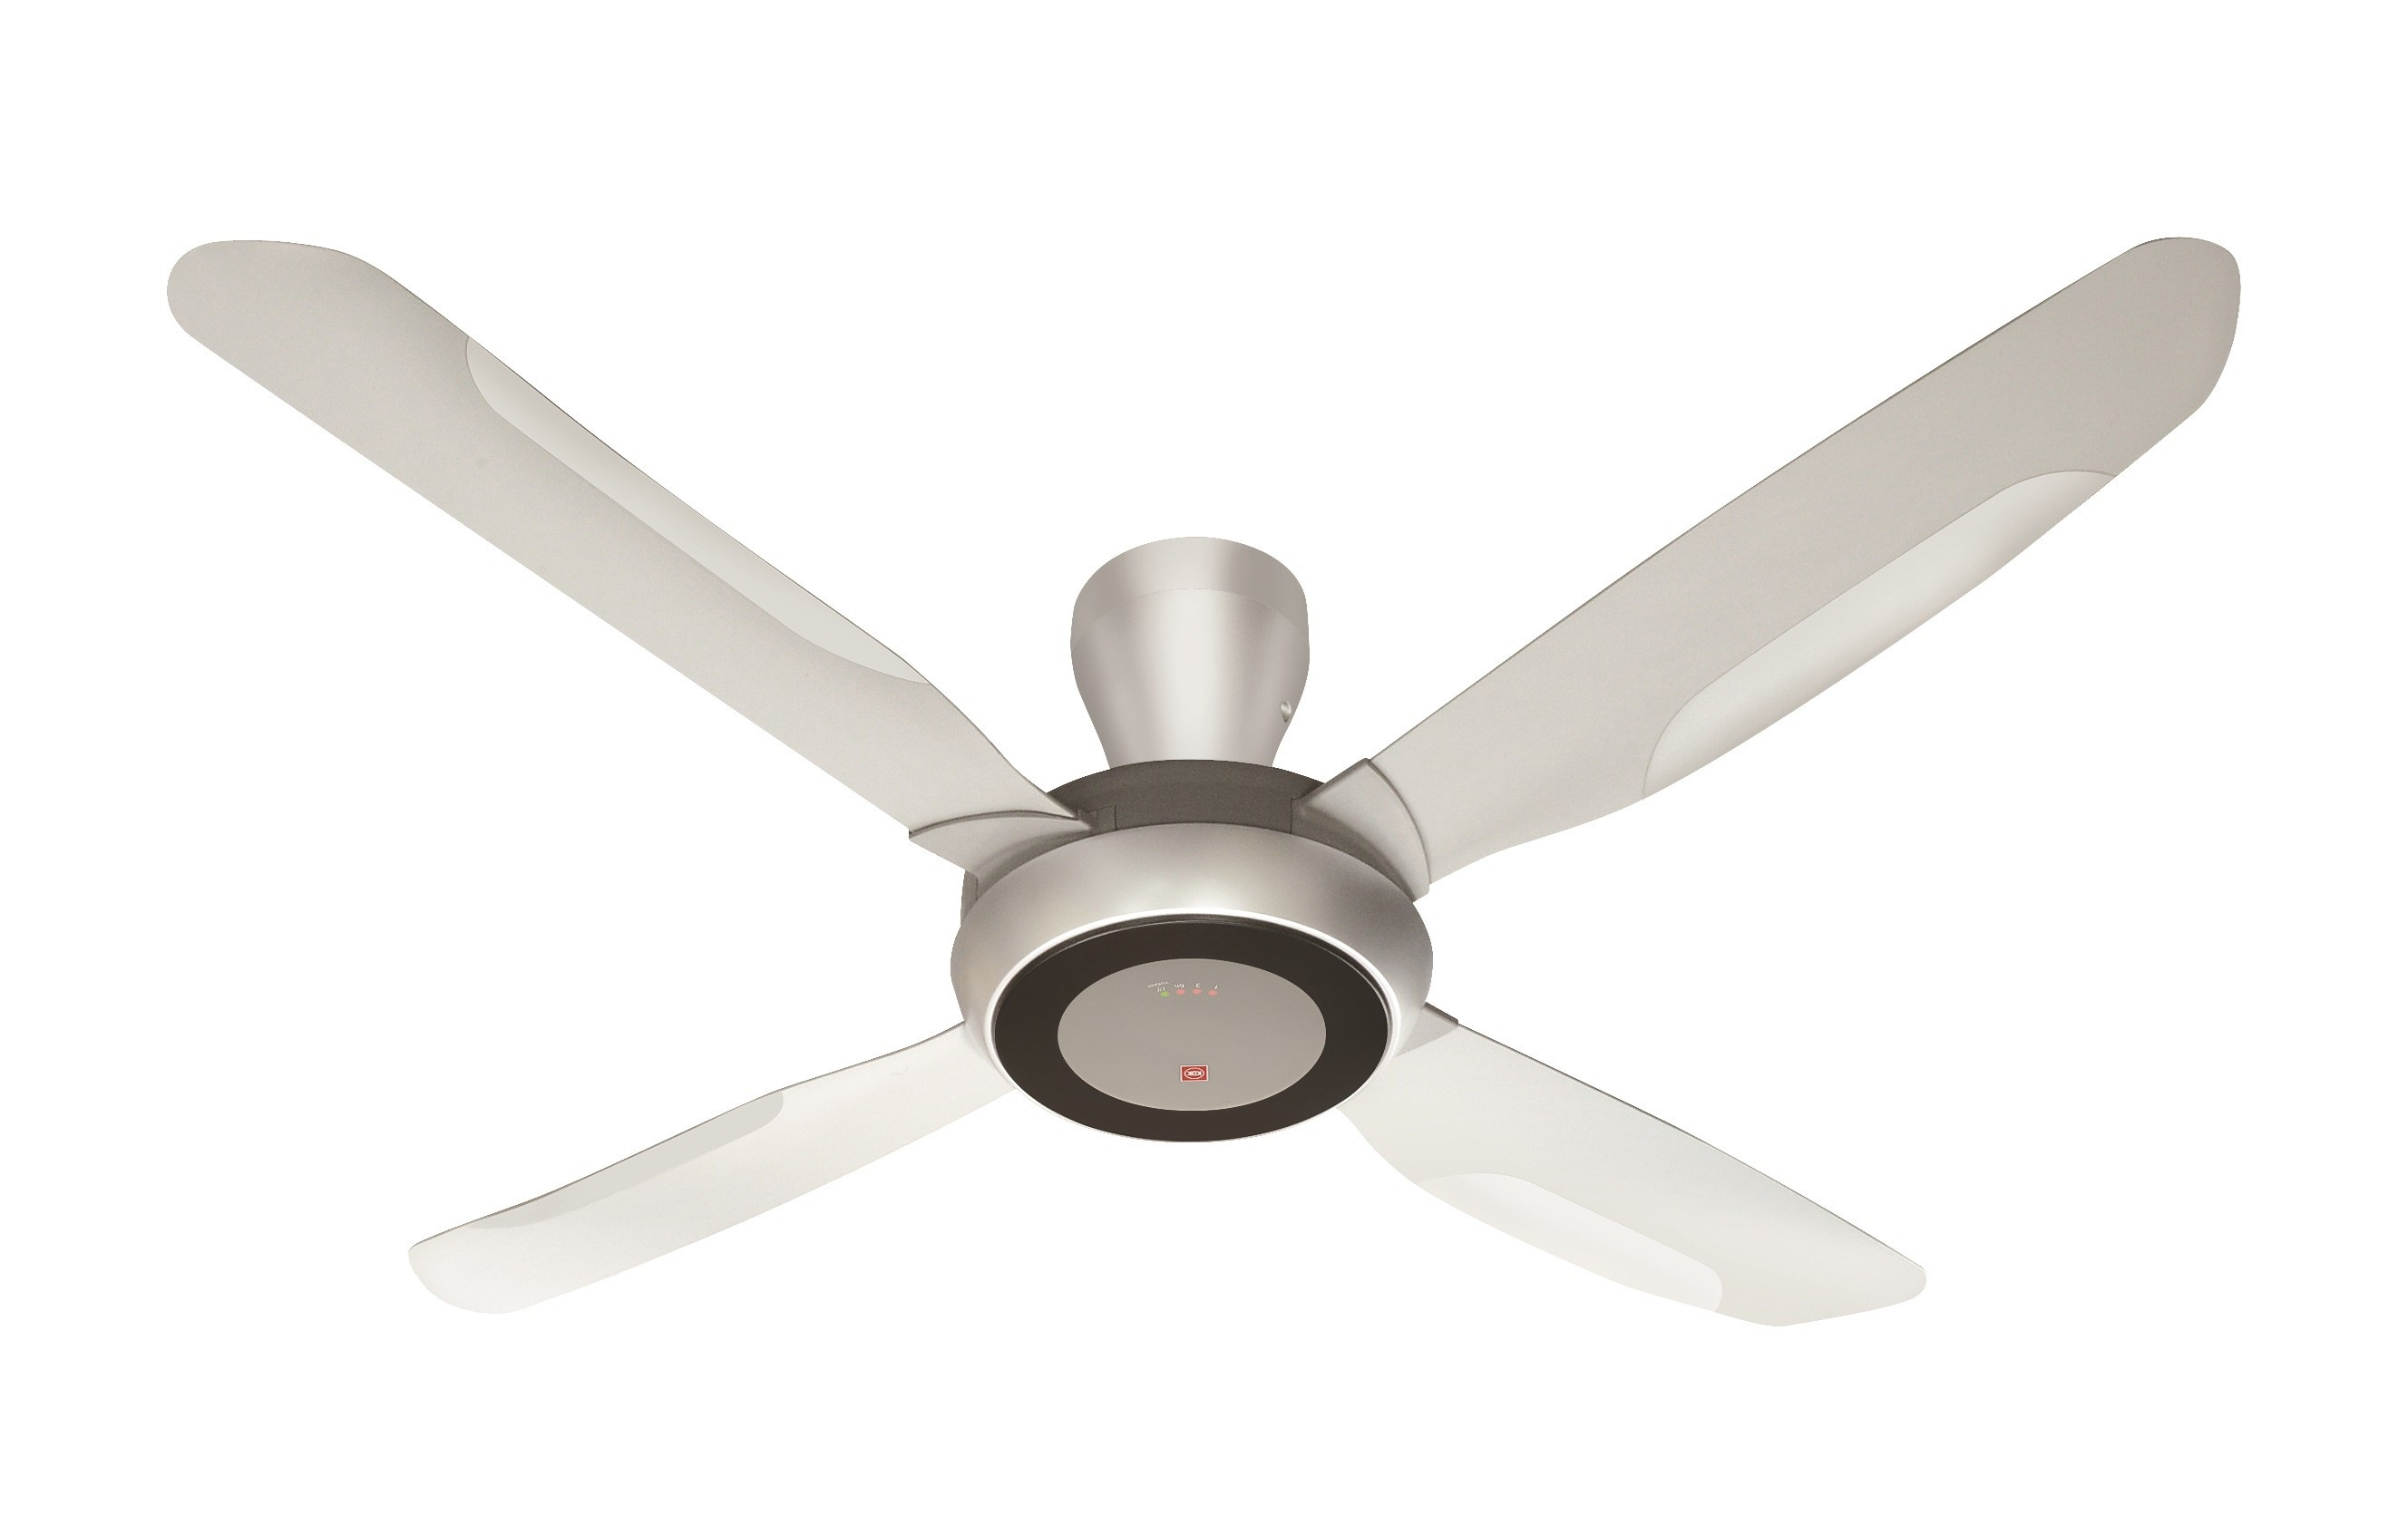 Kdk 4 blade ceiling fan with remote r56sv singapore eezee kdk 4 blade ceiling fan with remote r56sv mozeypictures Gallery